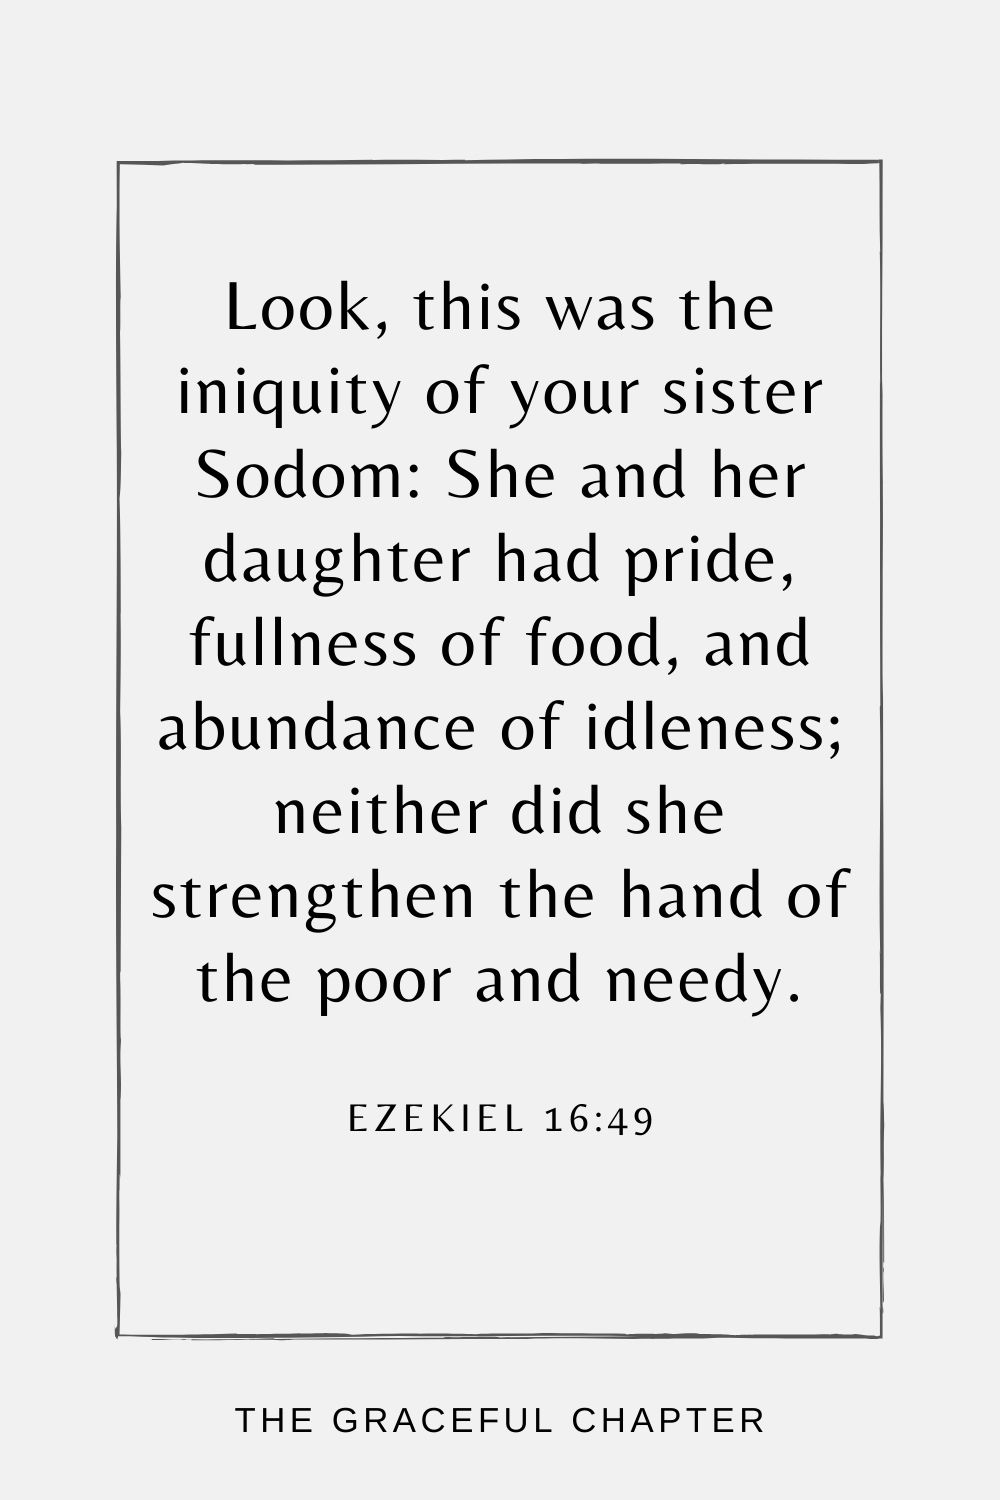 Look, this was the iniquity of your sister Sodom: She and her daughter had pride, fullness of food, and abundance of idleness; neither did she strengthen the hand of the poor and needy. Ezekiel 16:49